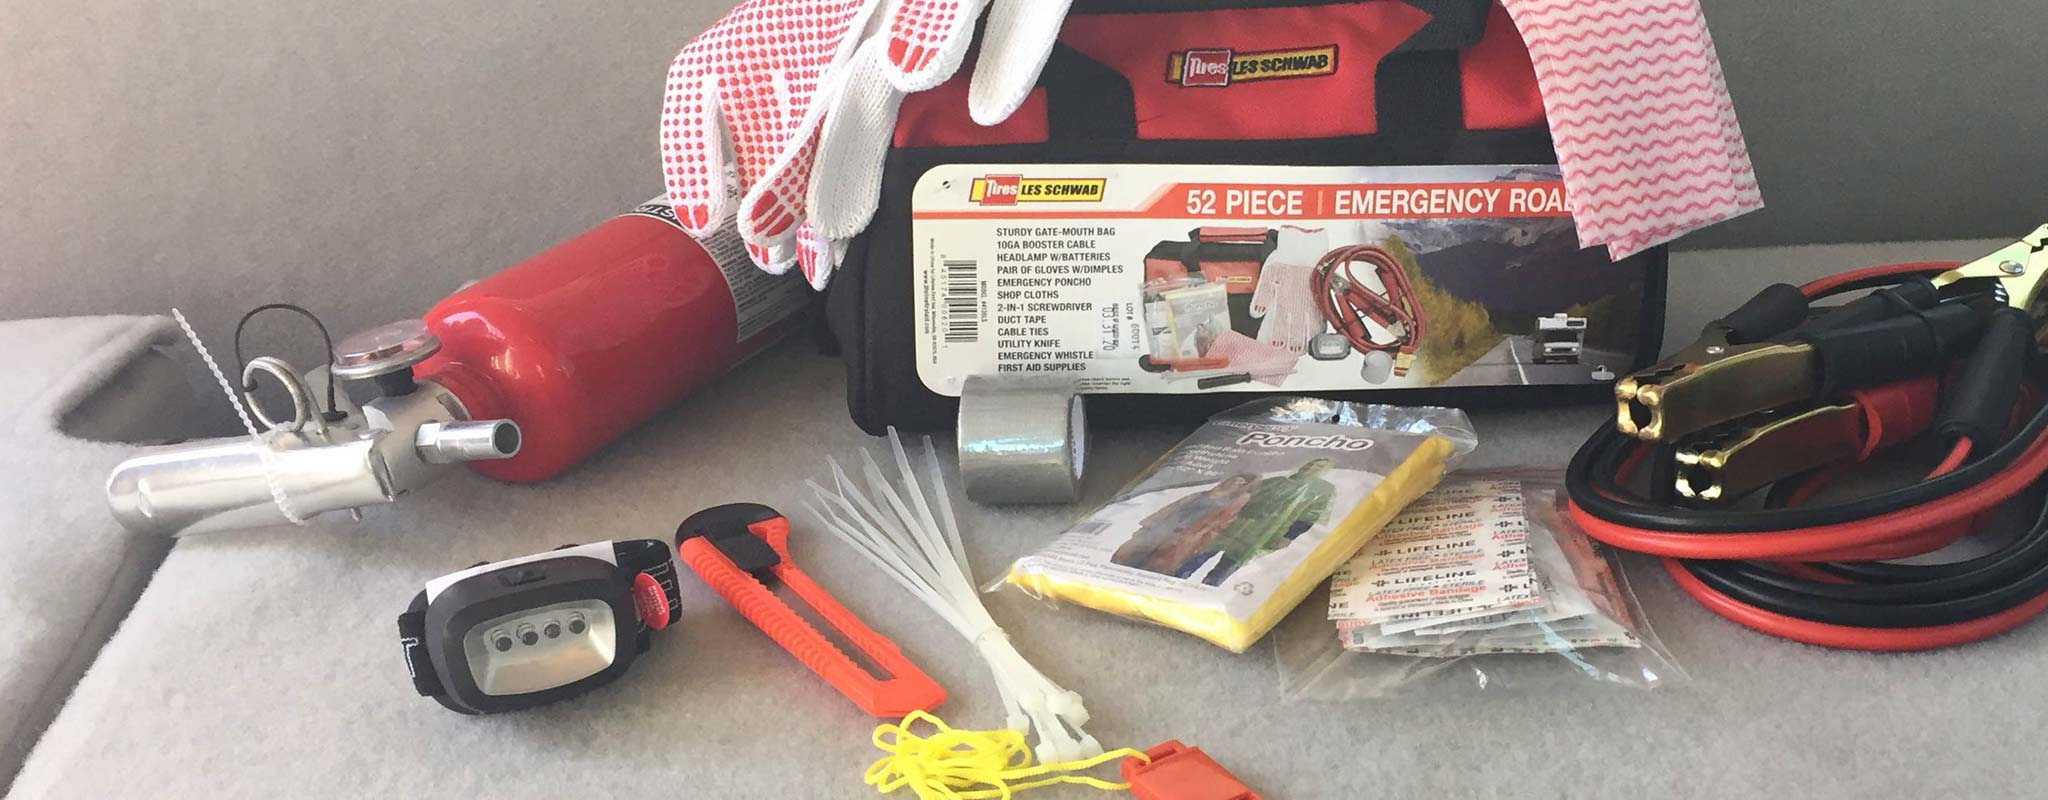 Be a Hero with a Summer Road Trip Safety Kit - Les Schwab